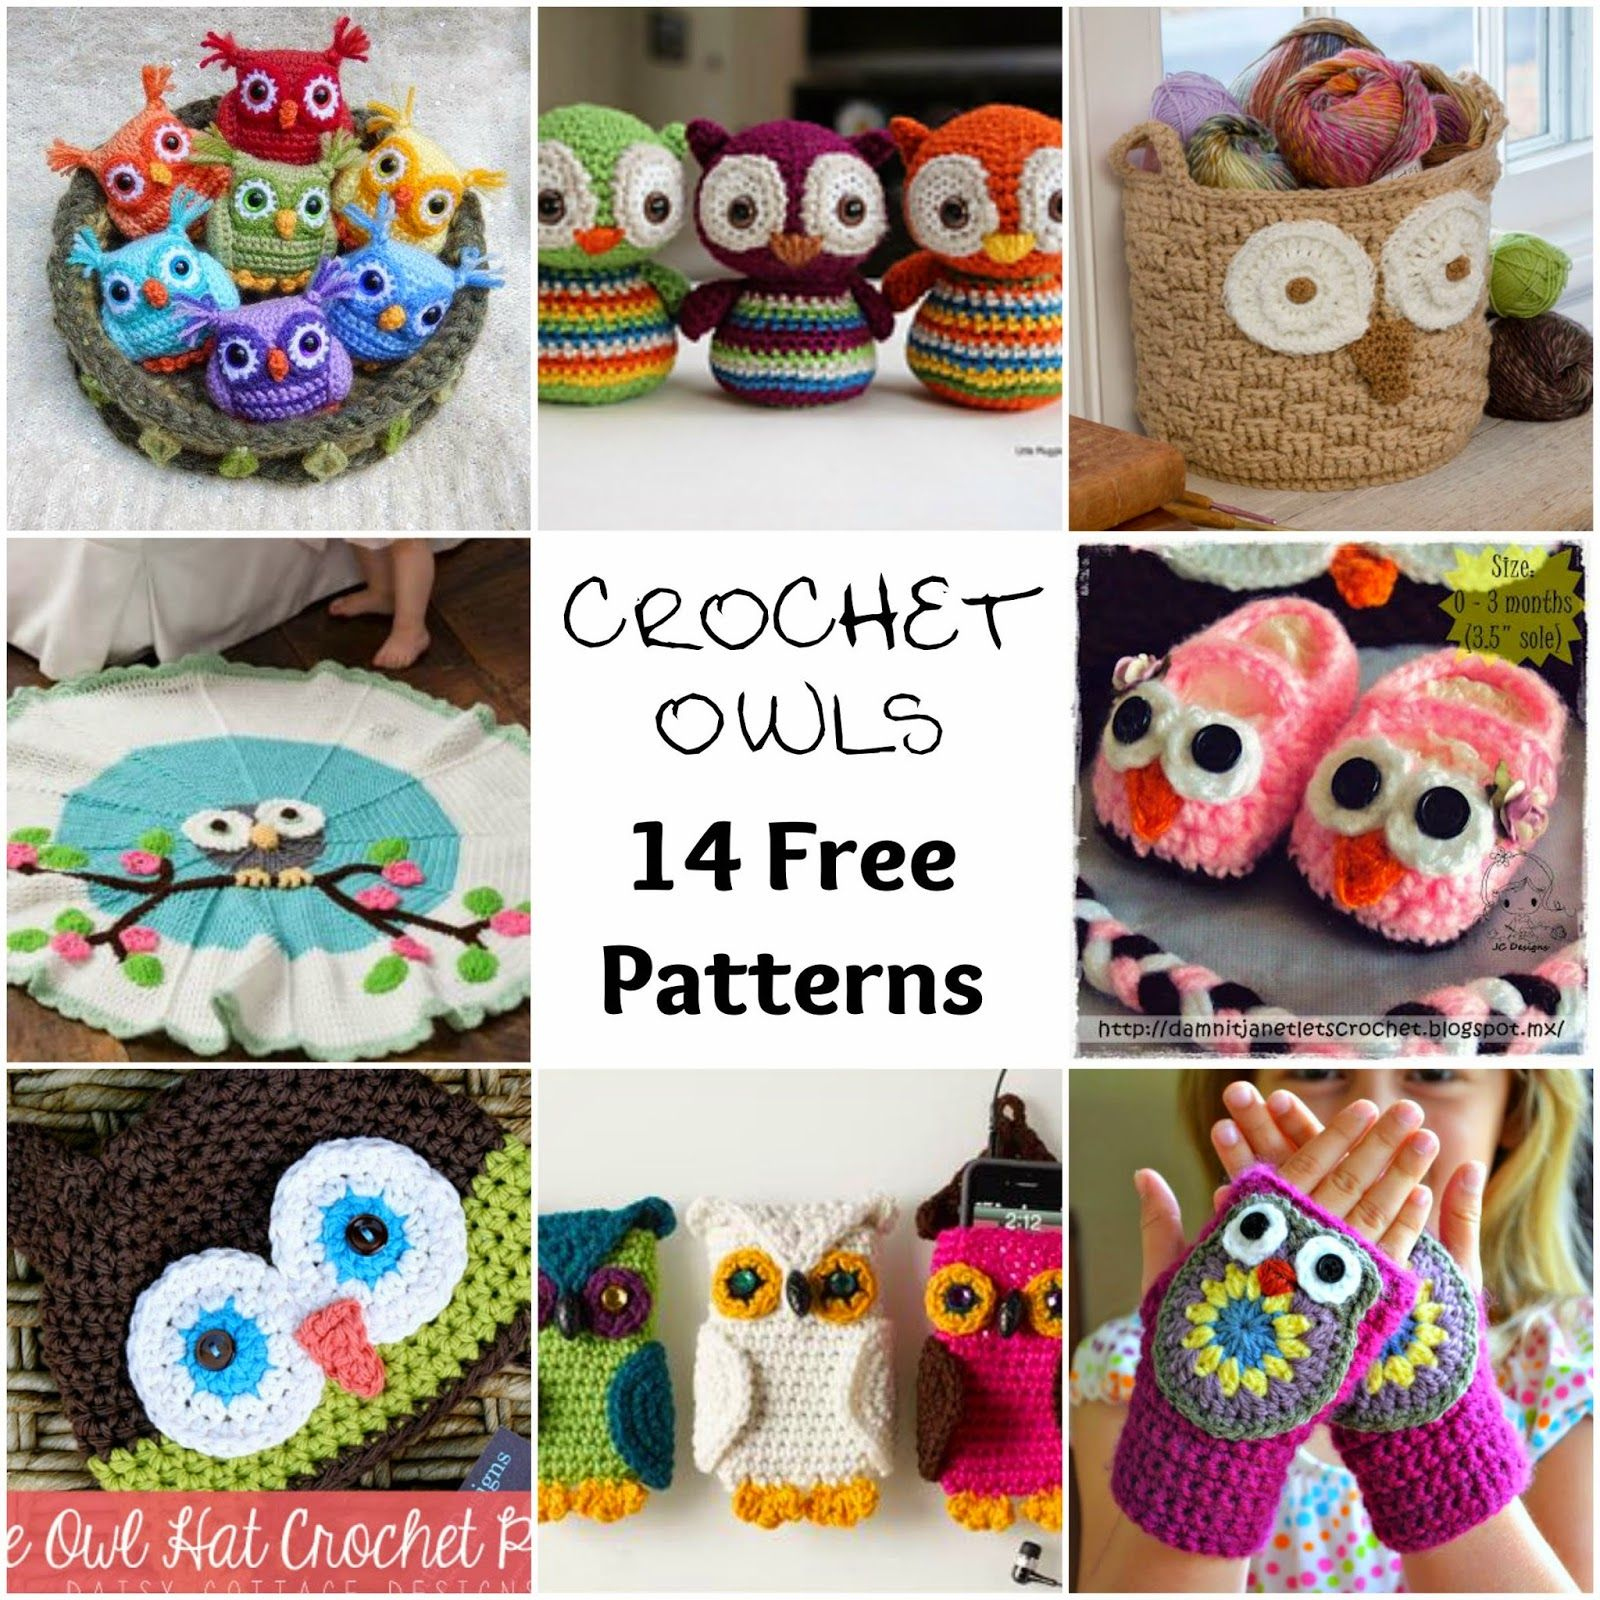 TMK crochet: Free Crochet Pattern Round-Up - Owls | Crochet ...